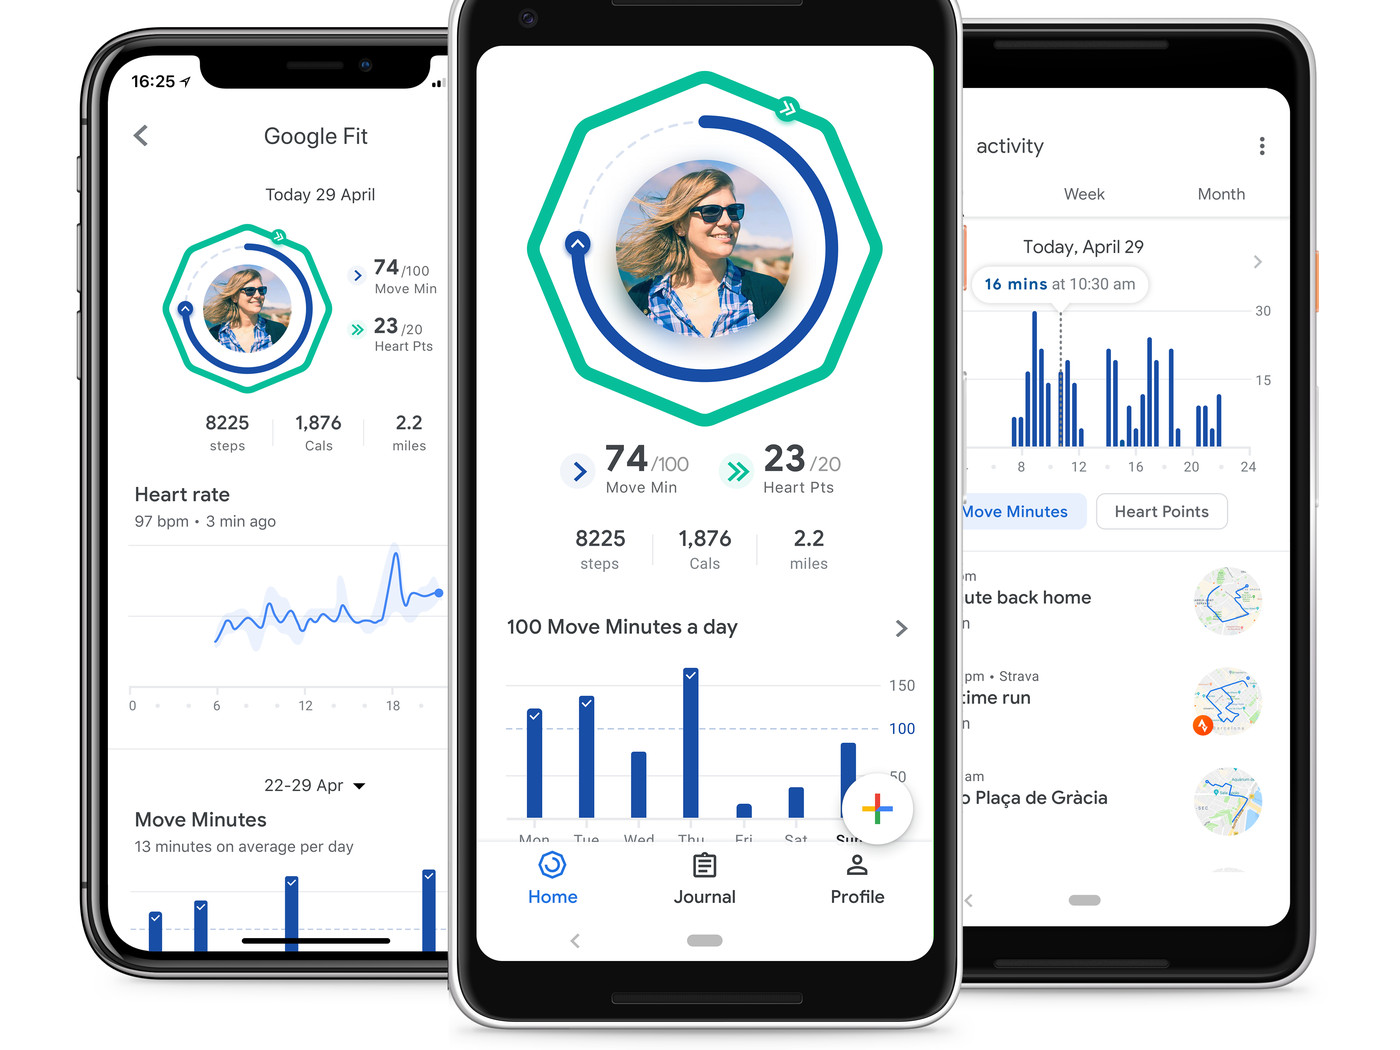 Google Fit is getting redesigned with new health-tracking